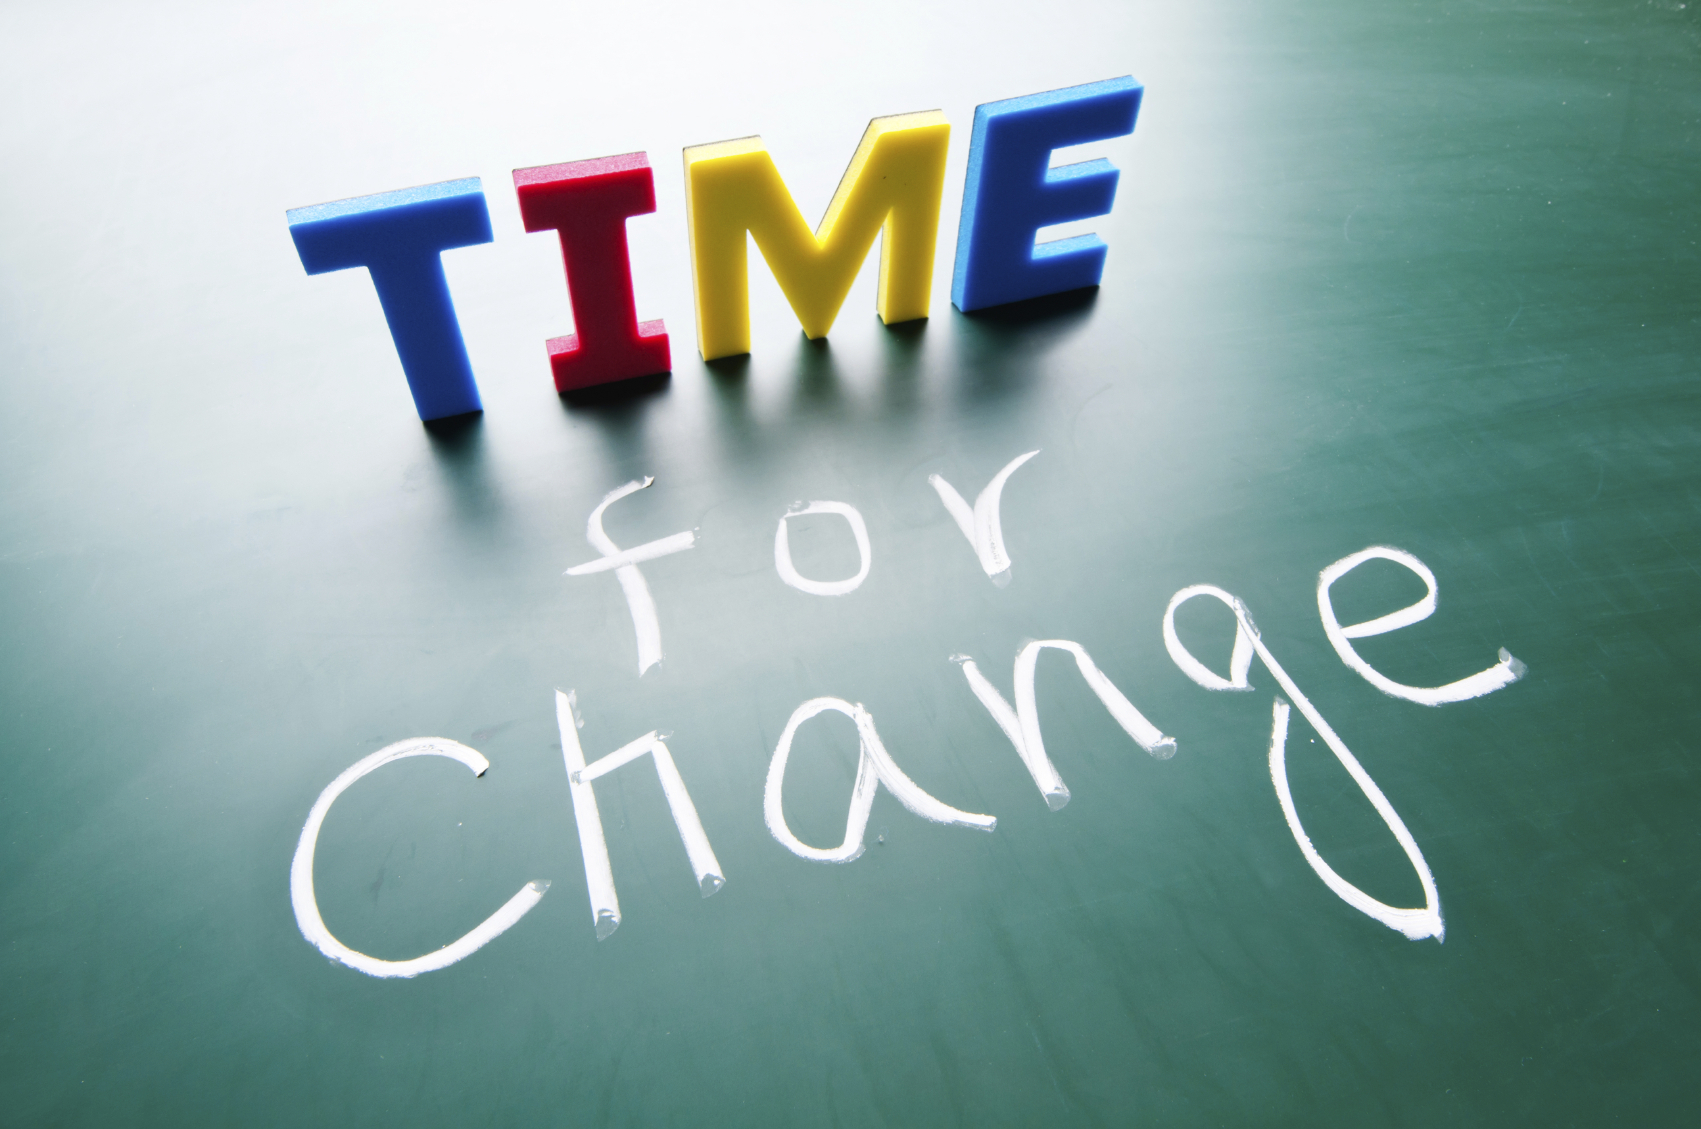 Cambiare senza paura - Time for Change